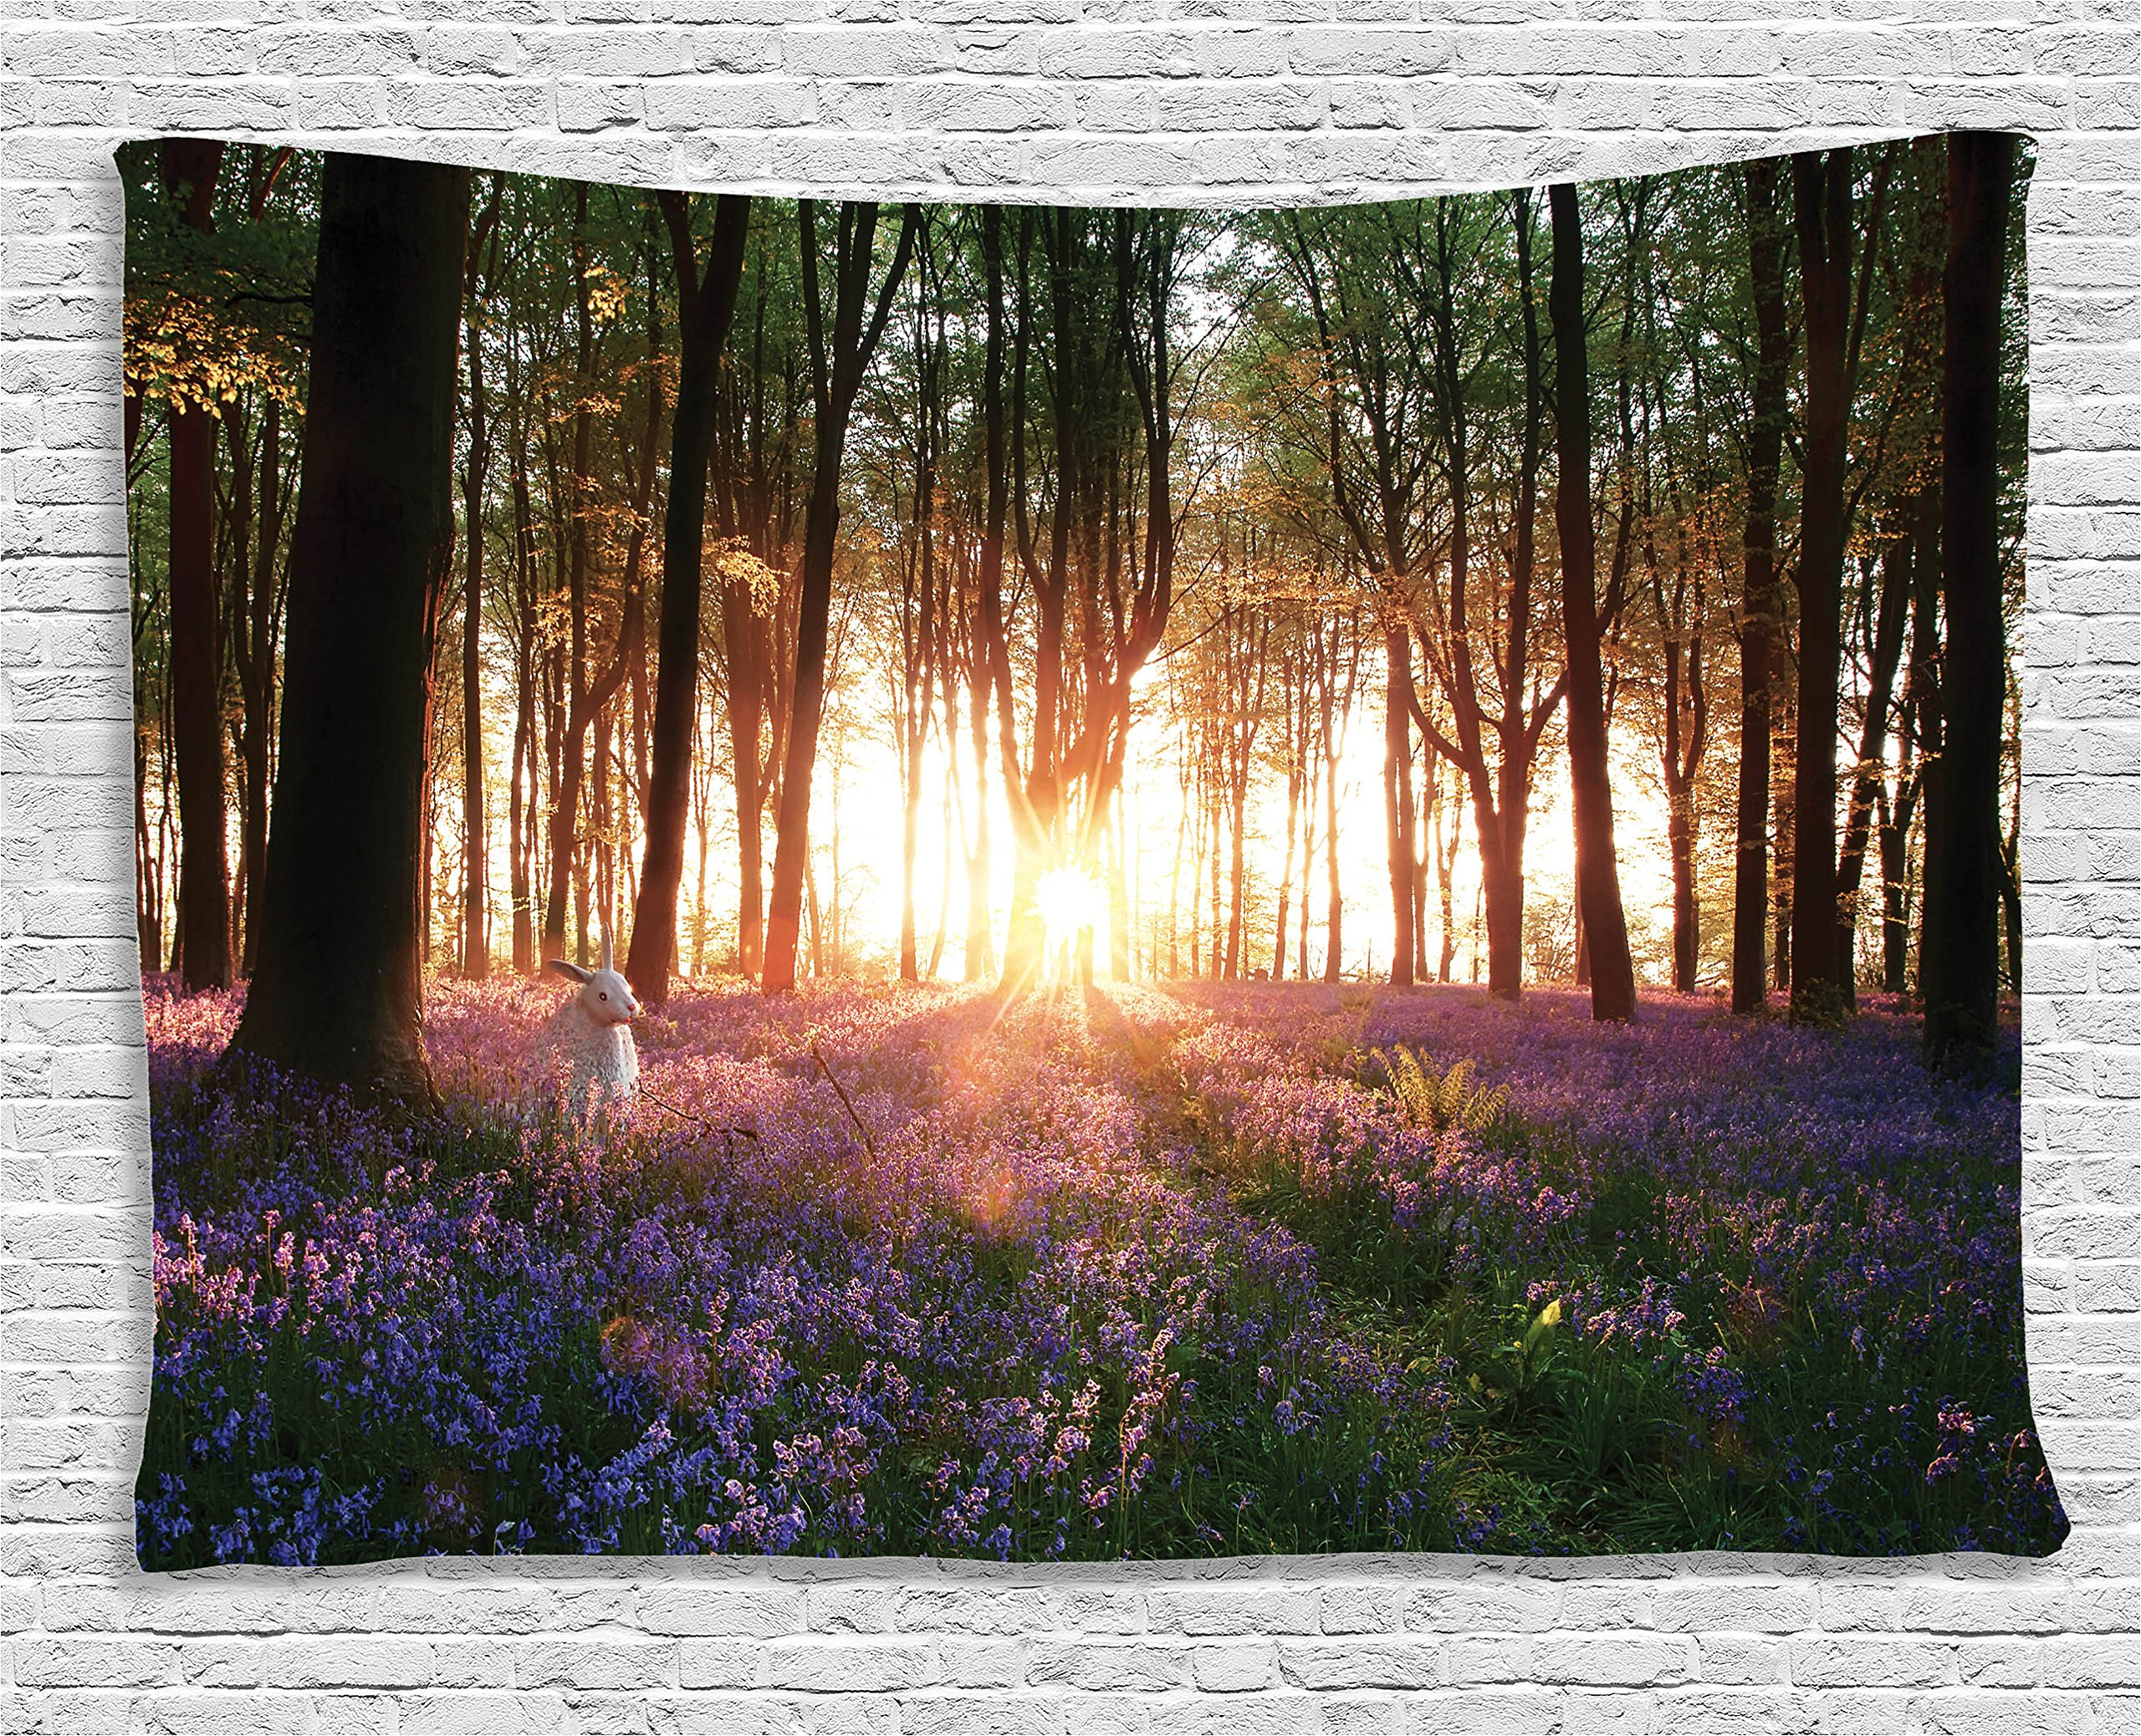 Ambesonne Floral Tapestry Forest Decor, Stunning Bluebell Woods Sunrise with Rabbit Sunny Spring Day in Woodland, Bedroom Living Room Dorm Wall Hanging, 60 X 40 inches, Purple Green Brown